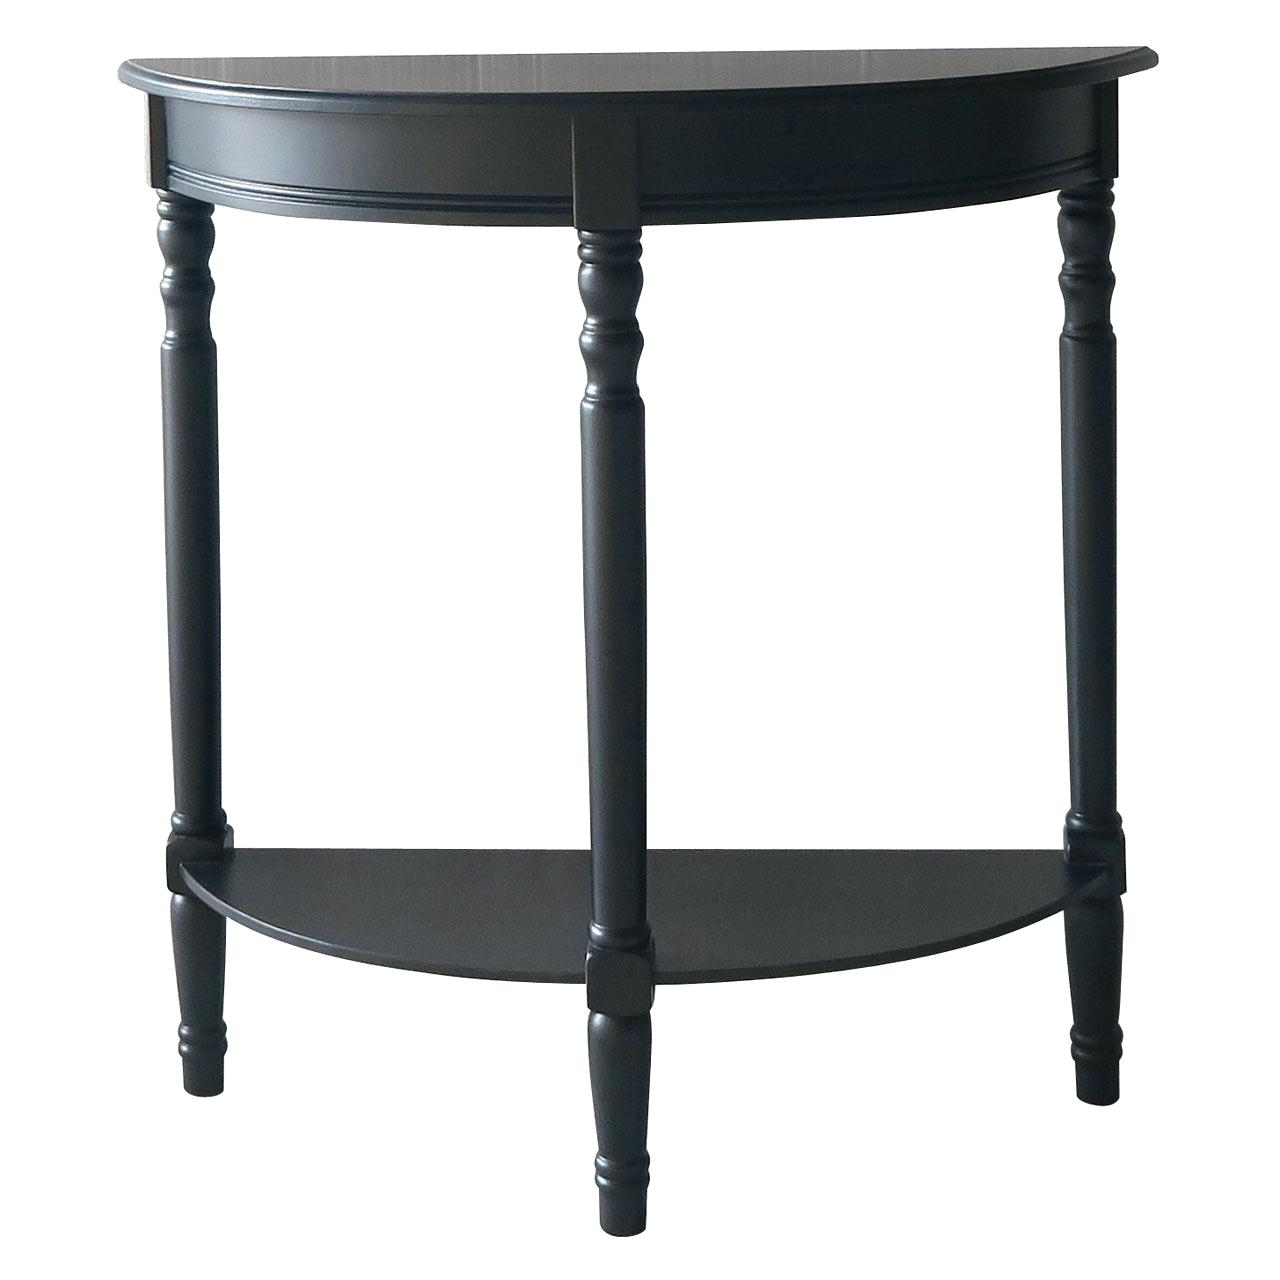 half moon hall tables black table with drawer brown wooden console heritage accent antique folding inch round decorator trendy lamps pier one nesting red and white patio umbrella